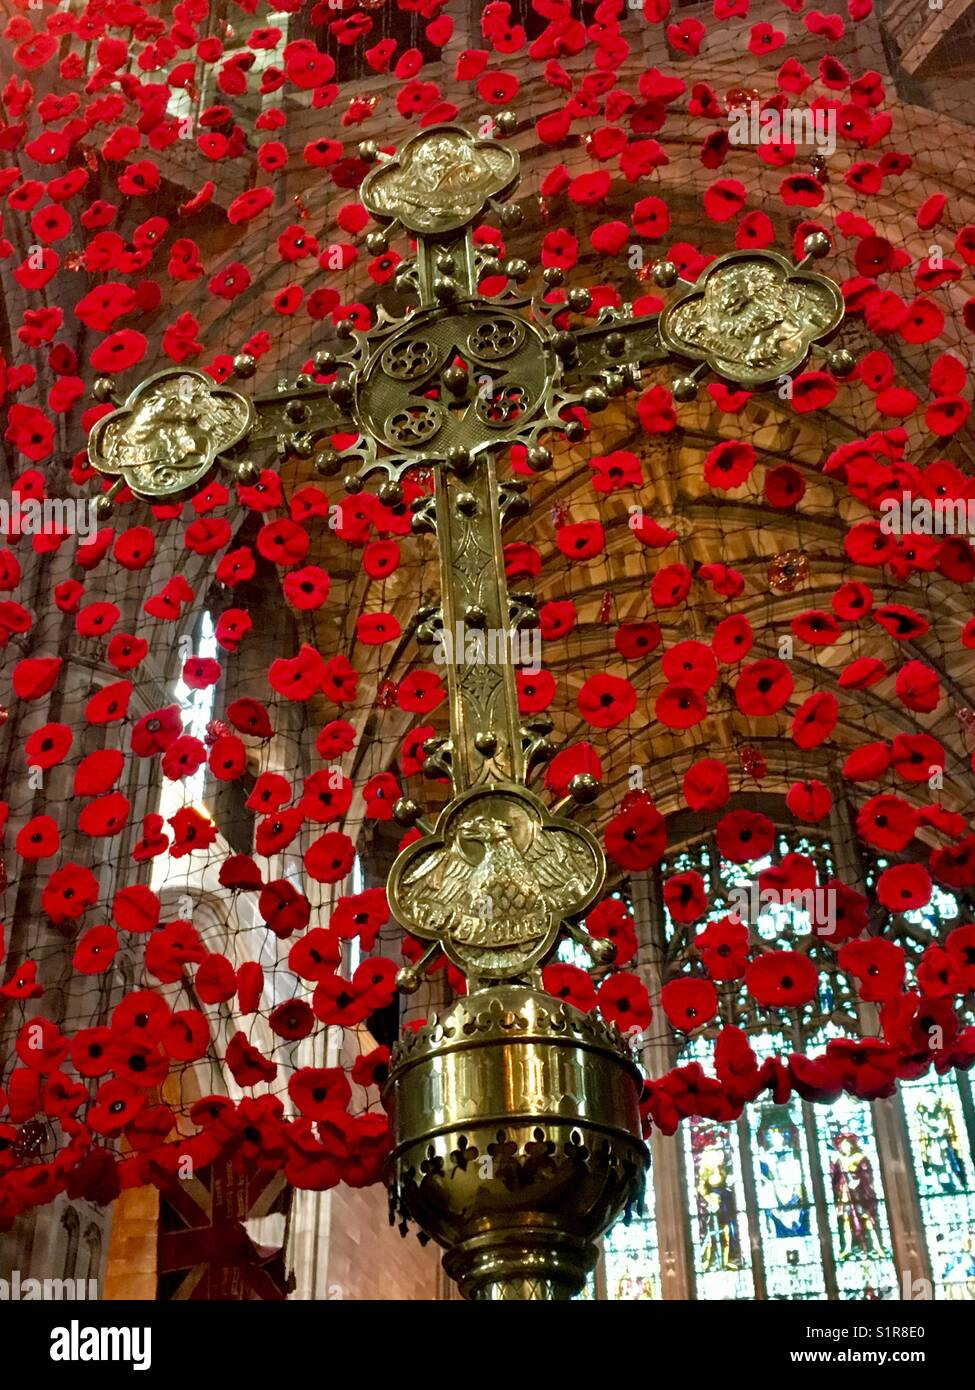 Cascade of Poppies and Brass Cross - Remembrance - Stock Image